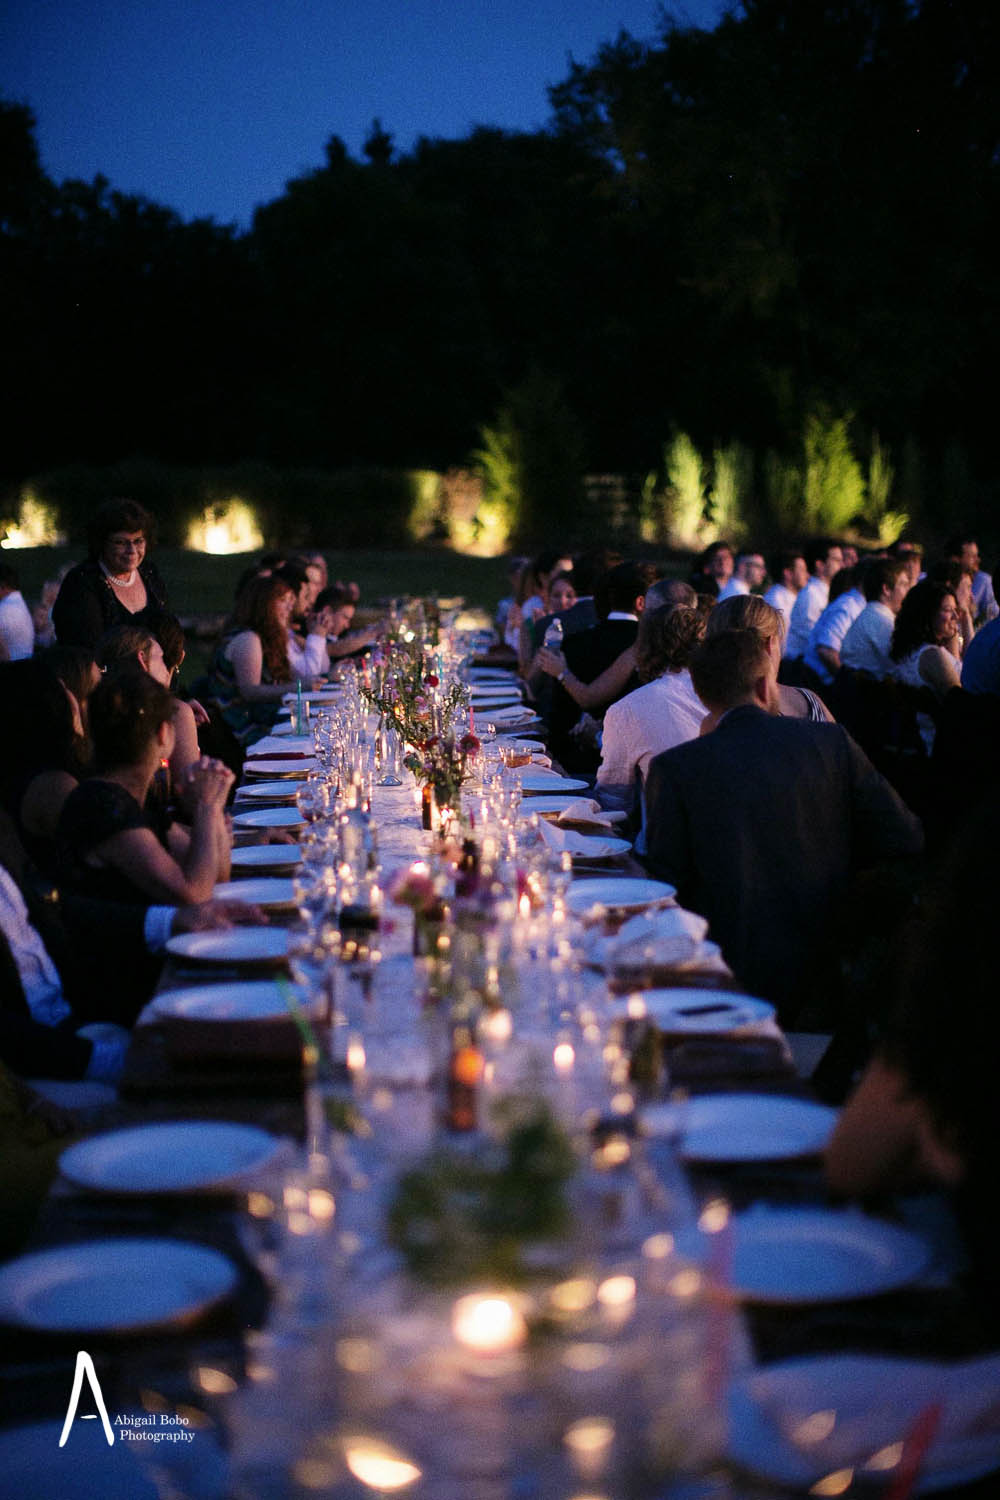 romantic wedding dinner reception under the stars outside night